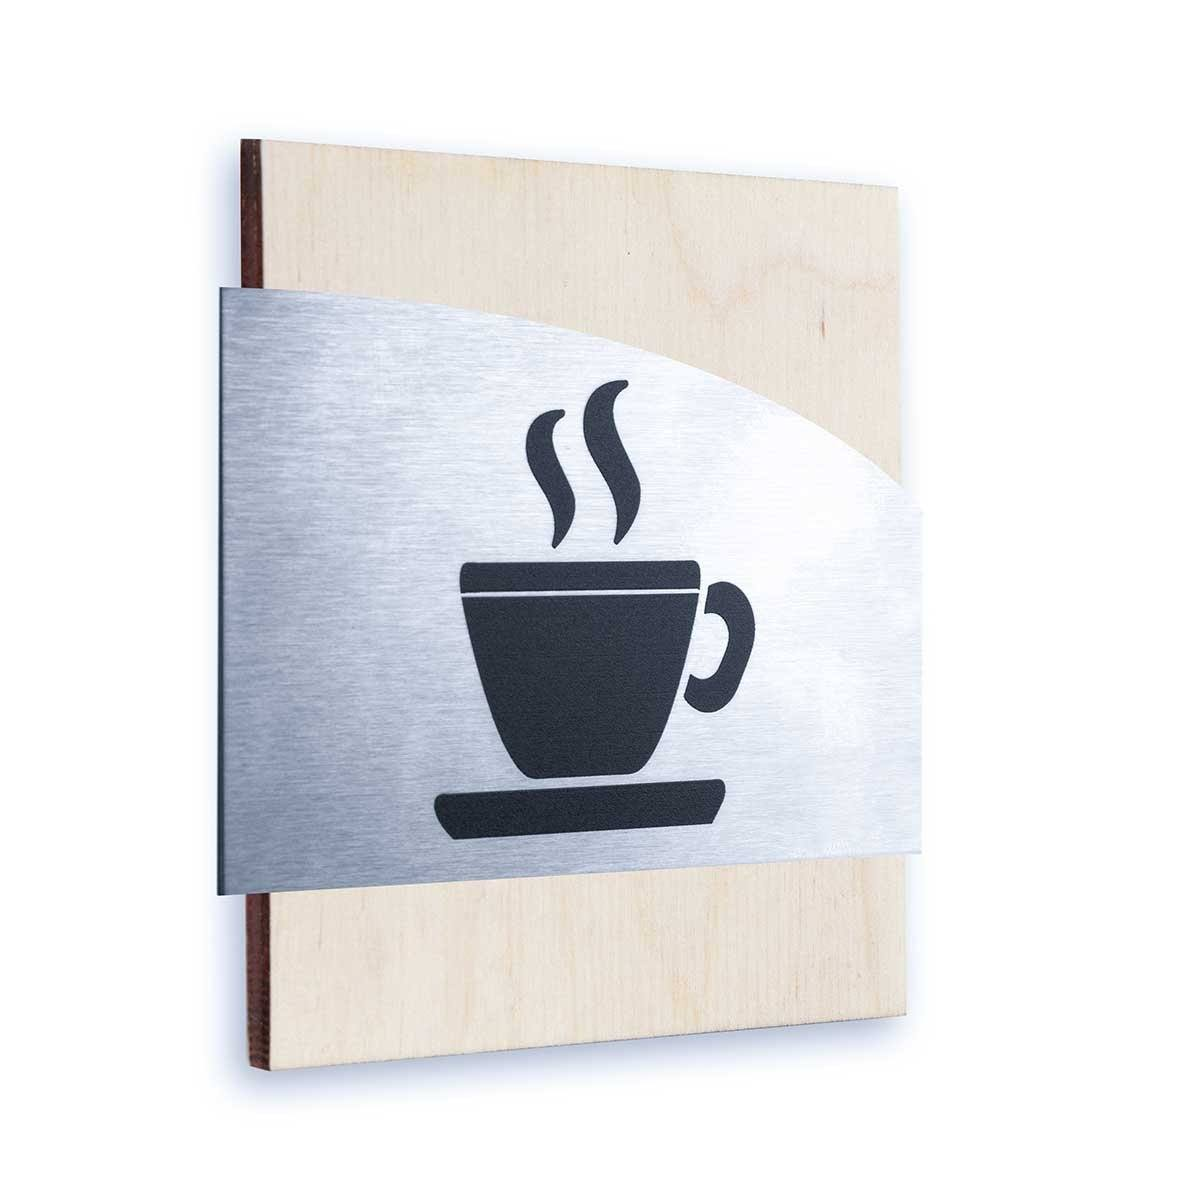 Steel Kitchen Wall Signs Information signs Natural wood Bsign